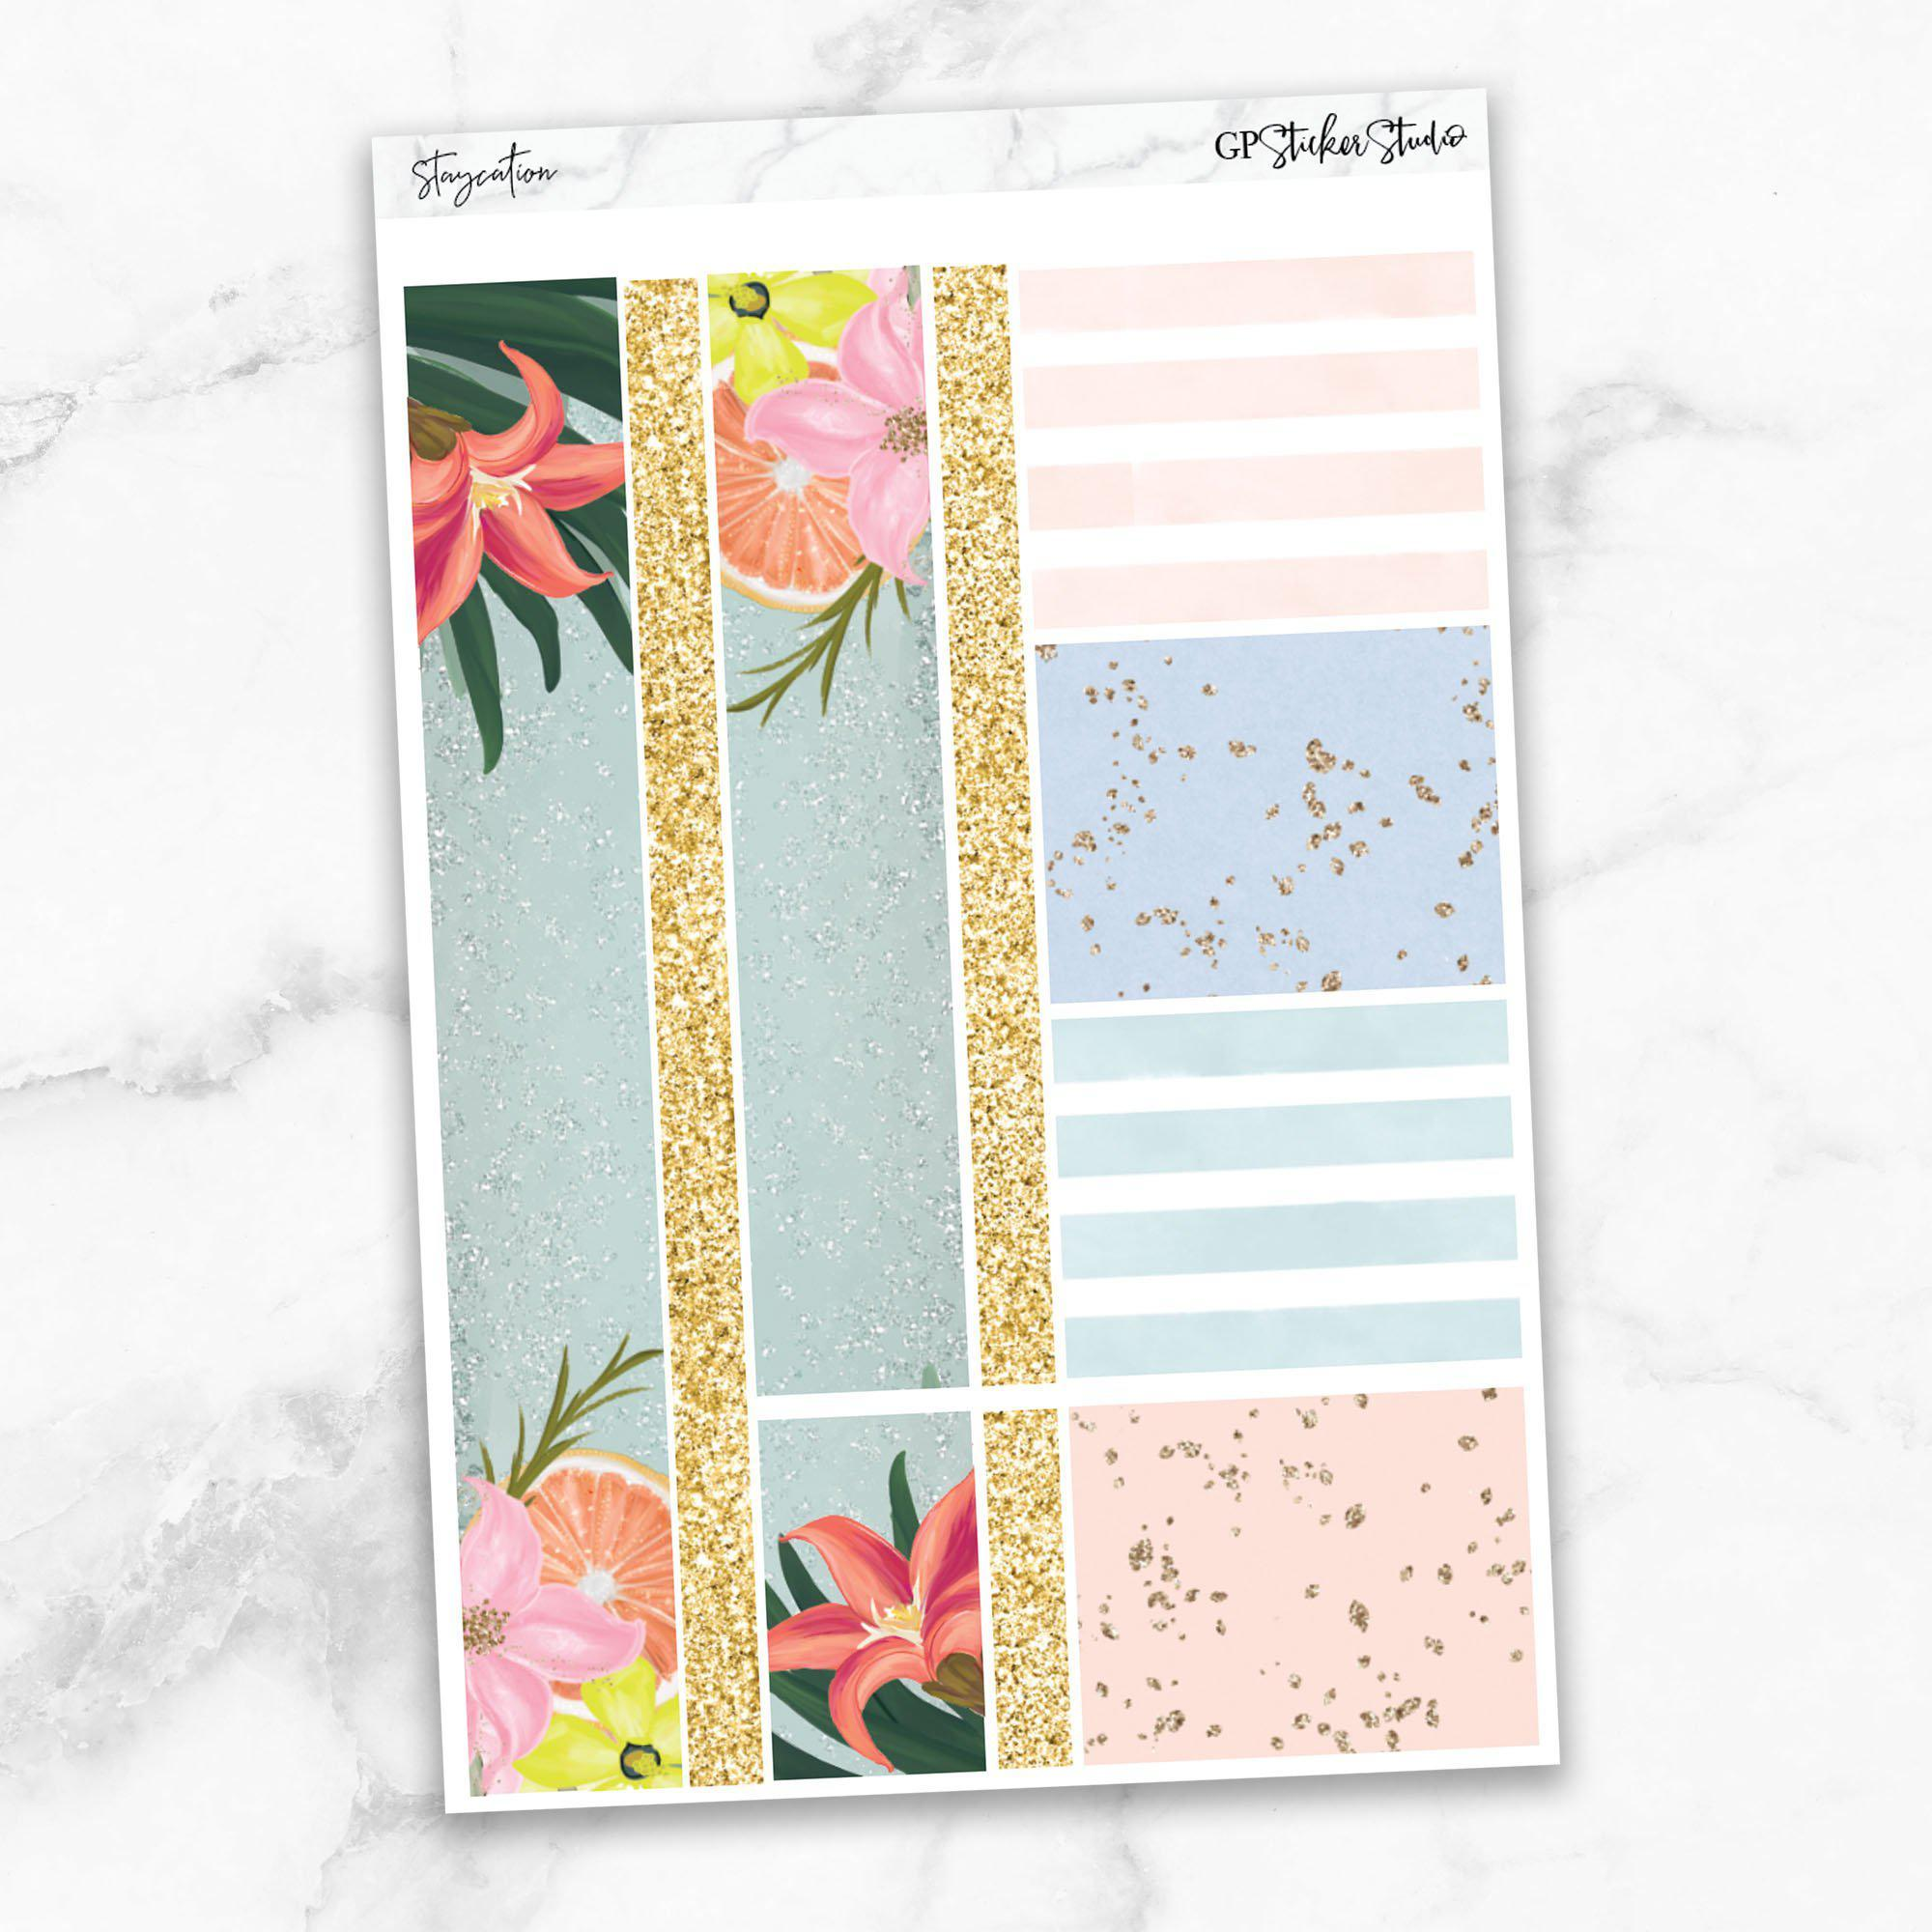 STAYCATION Washi Sheet Stickers-The GP Studio